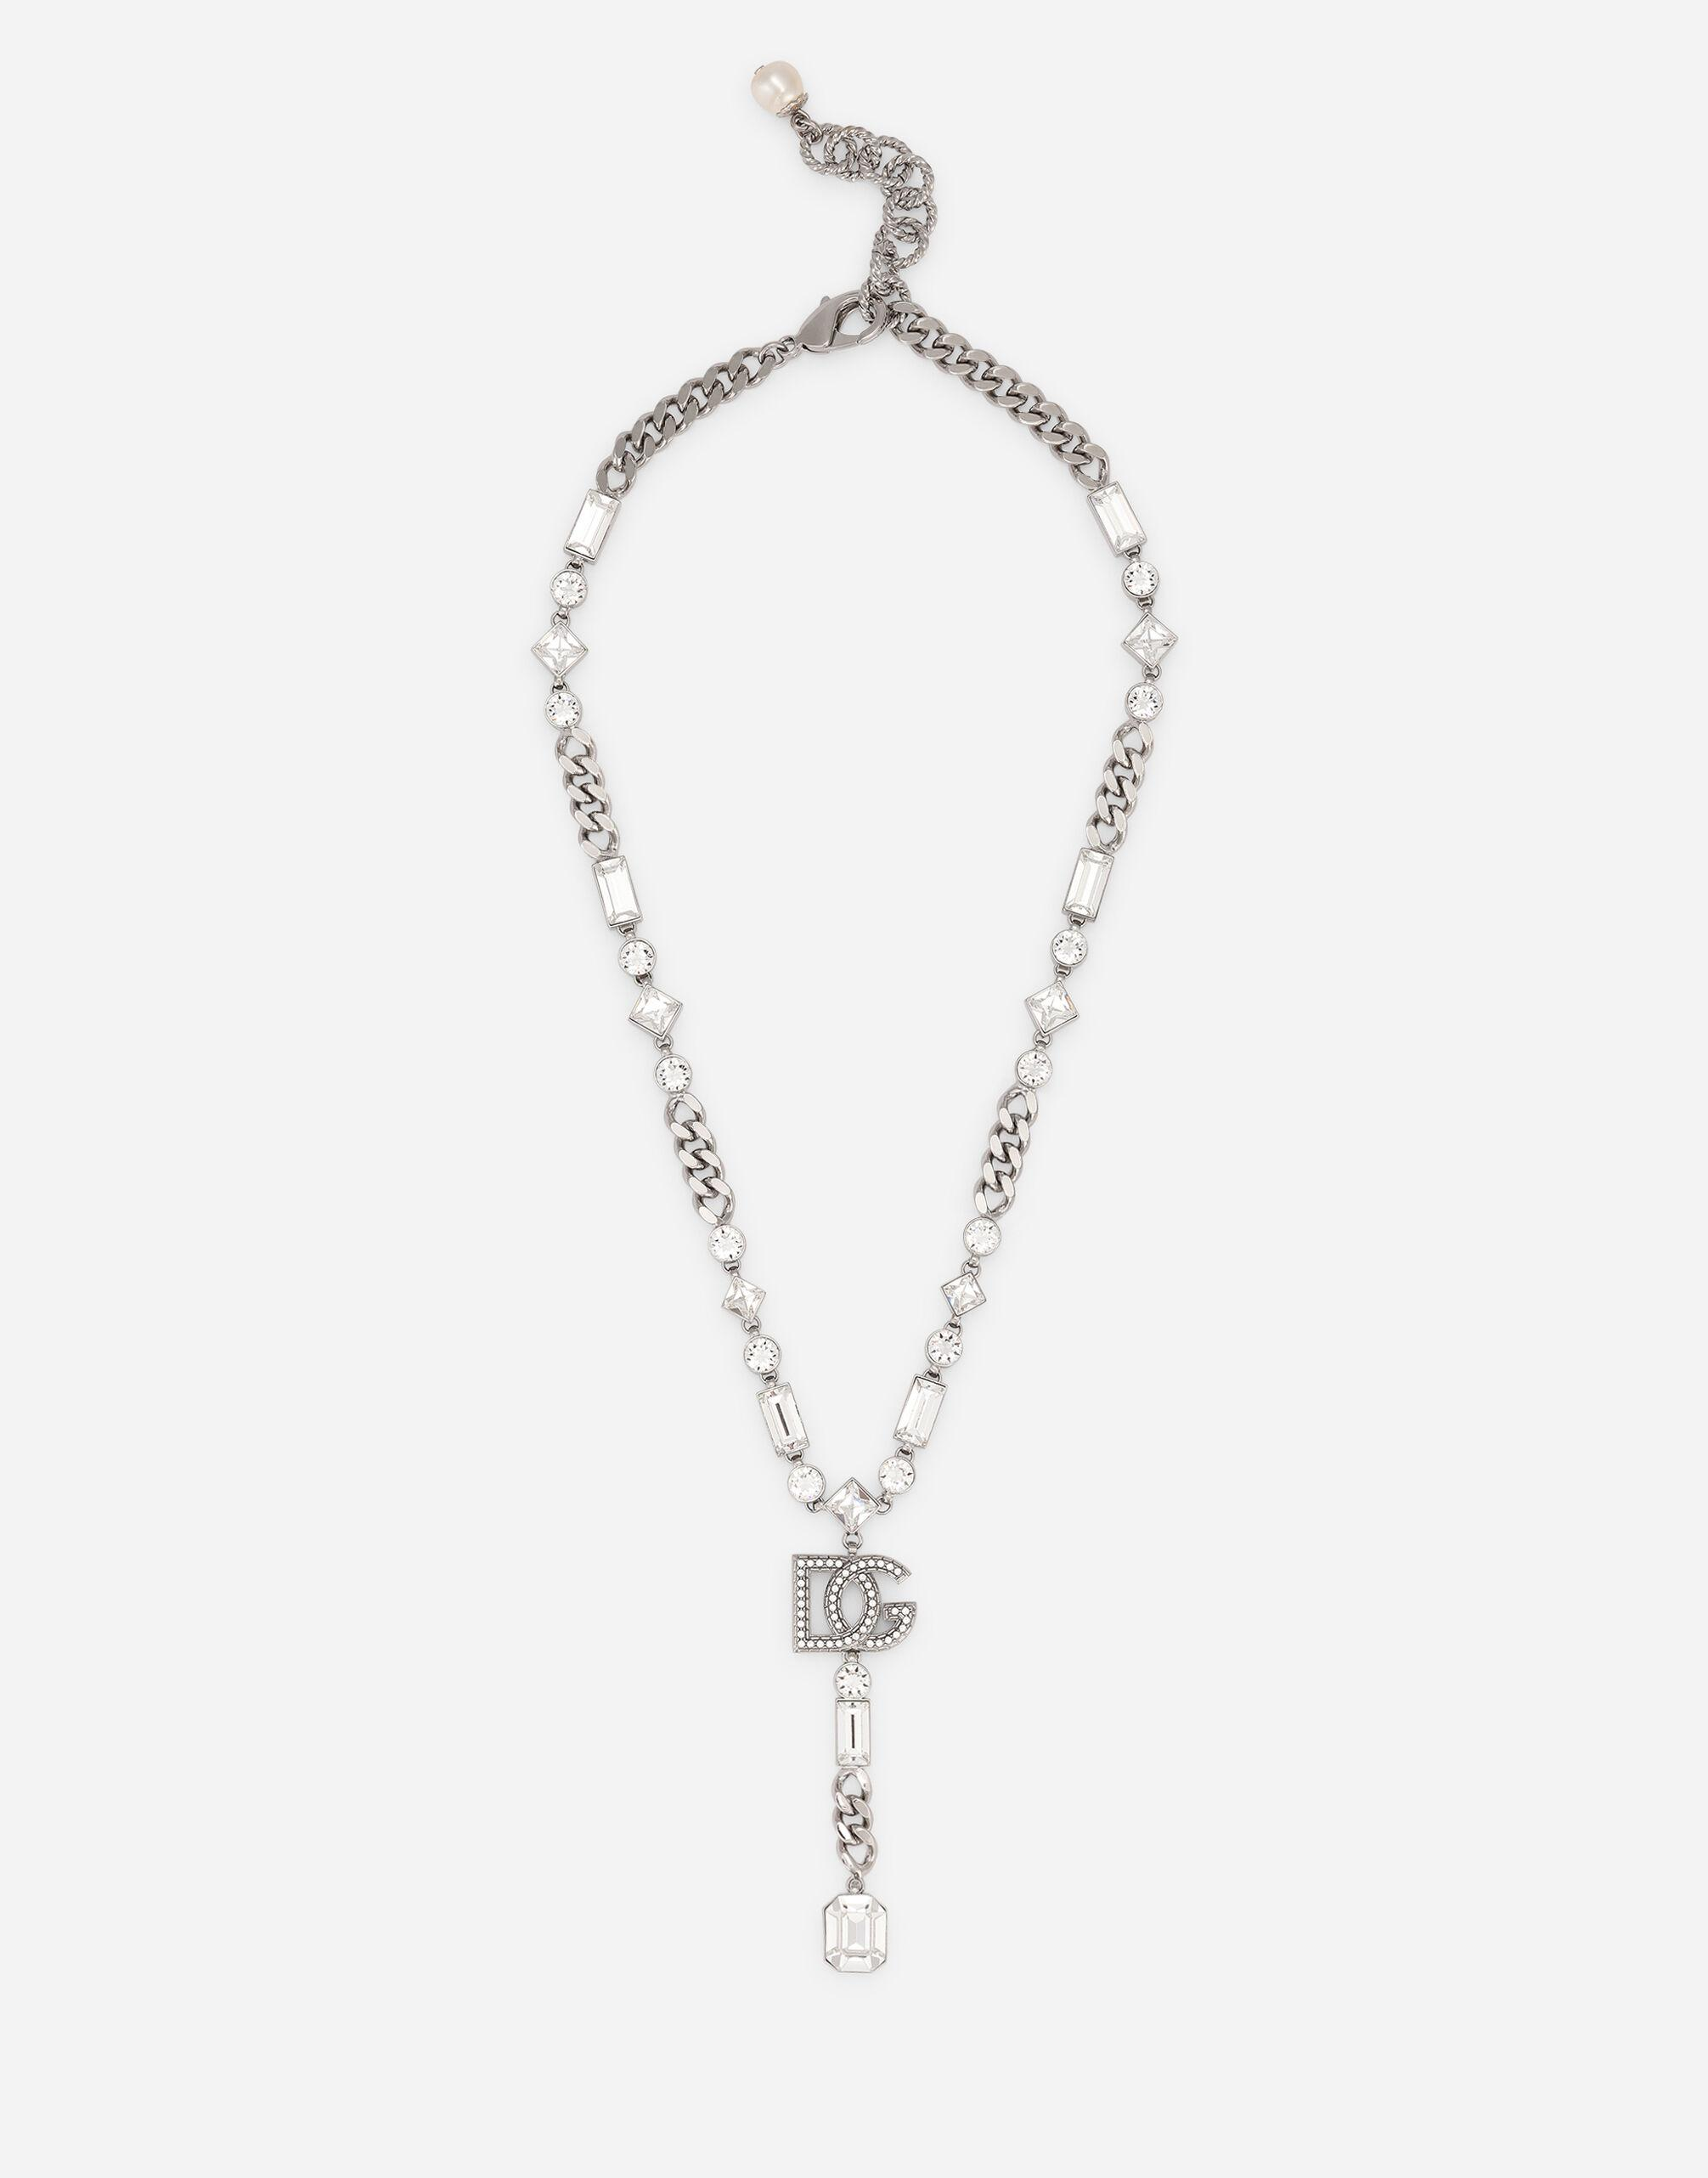 Link necklace with DG logo and rhinestone-detailed pendant